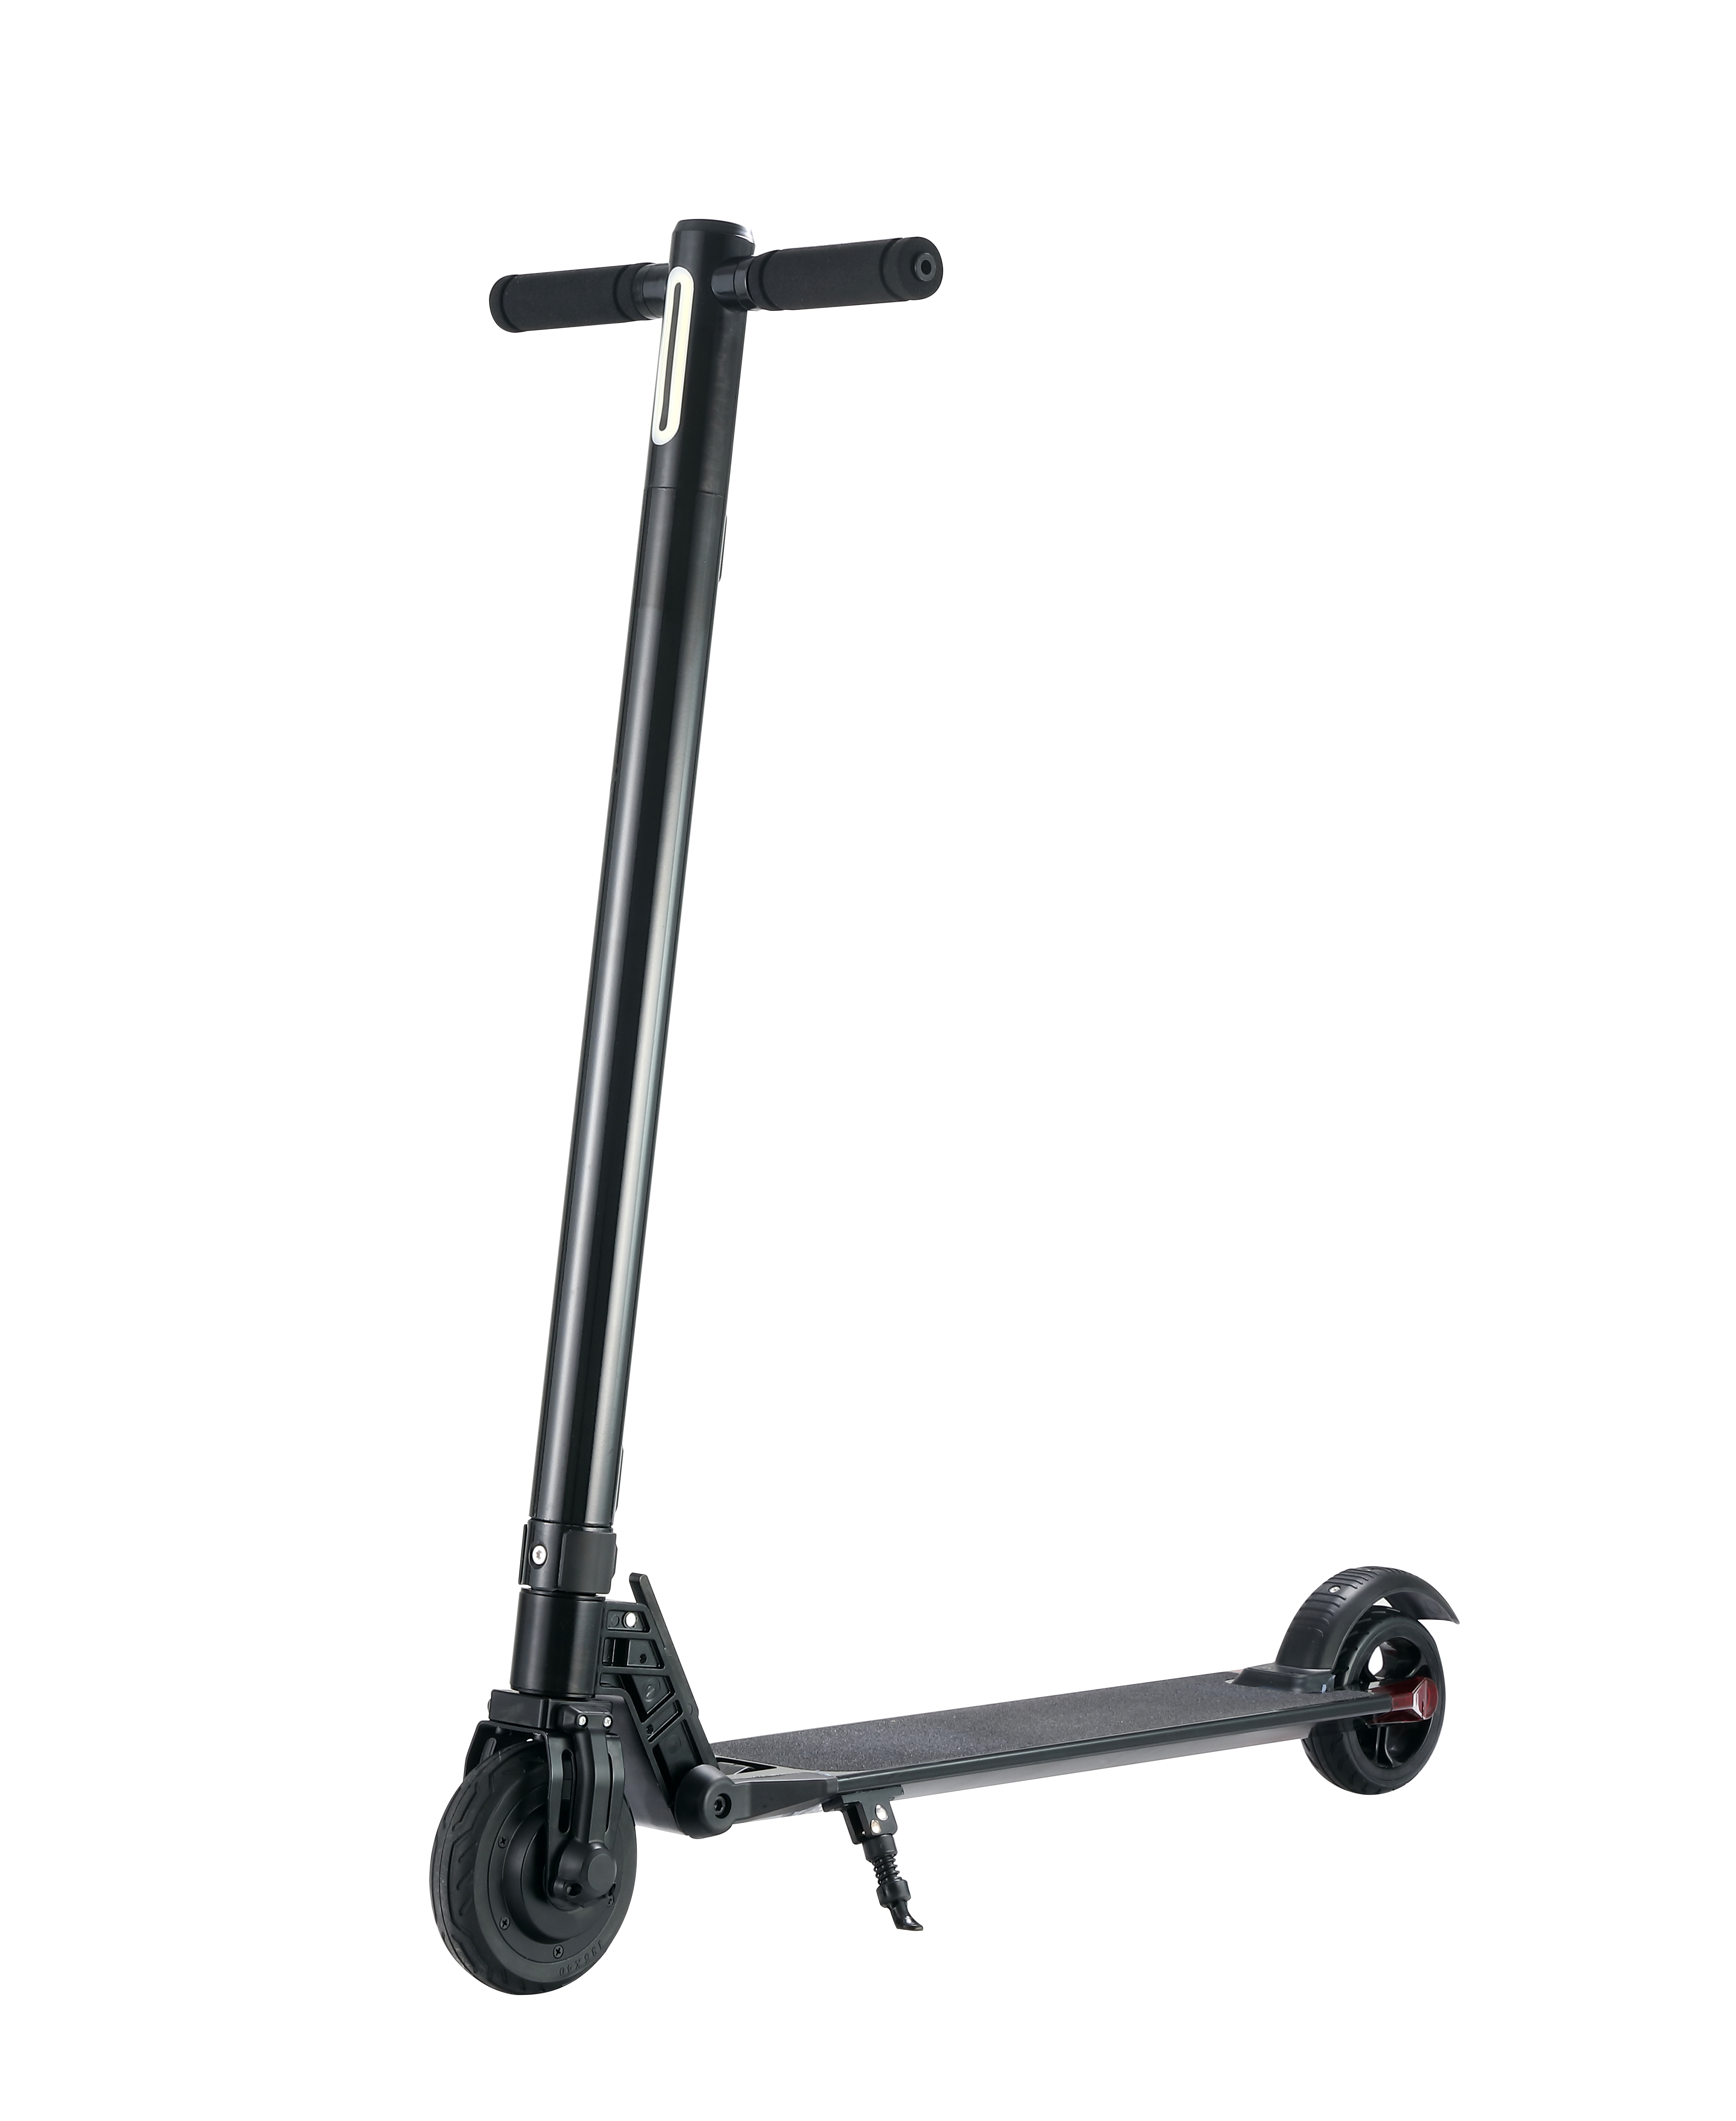 high speed cheap china fat tire mi mobility scooter dual motor off road eec electric kick scooter for big man, N/a